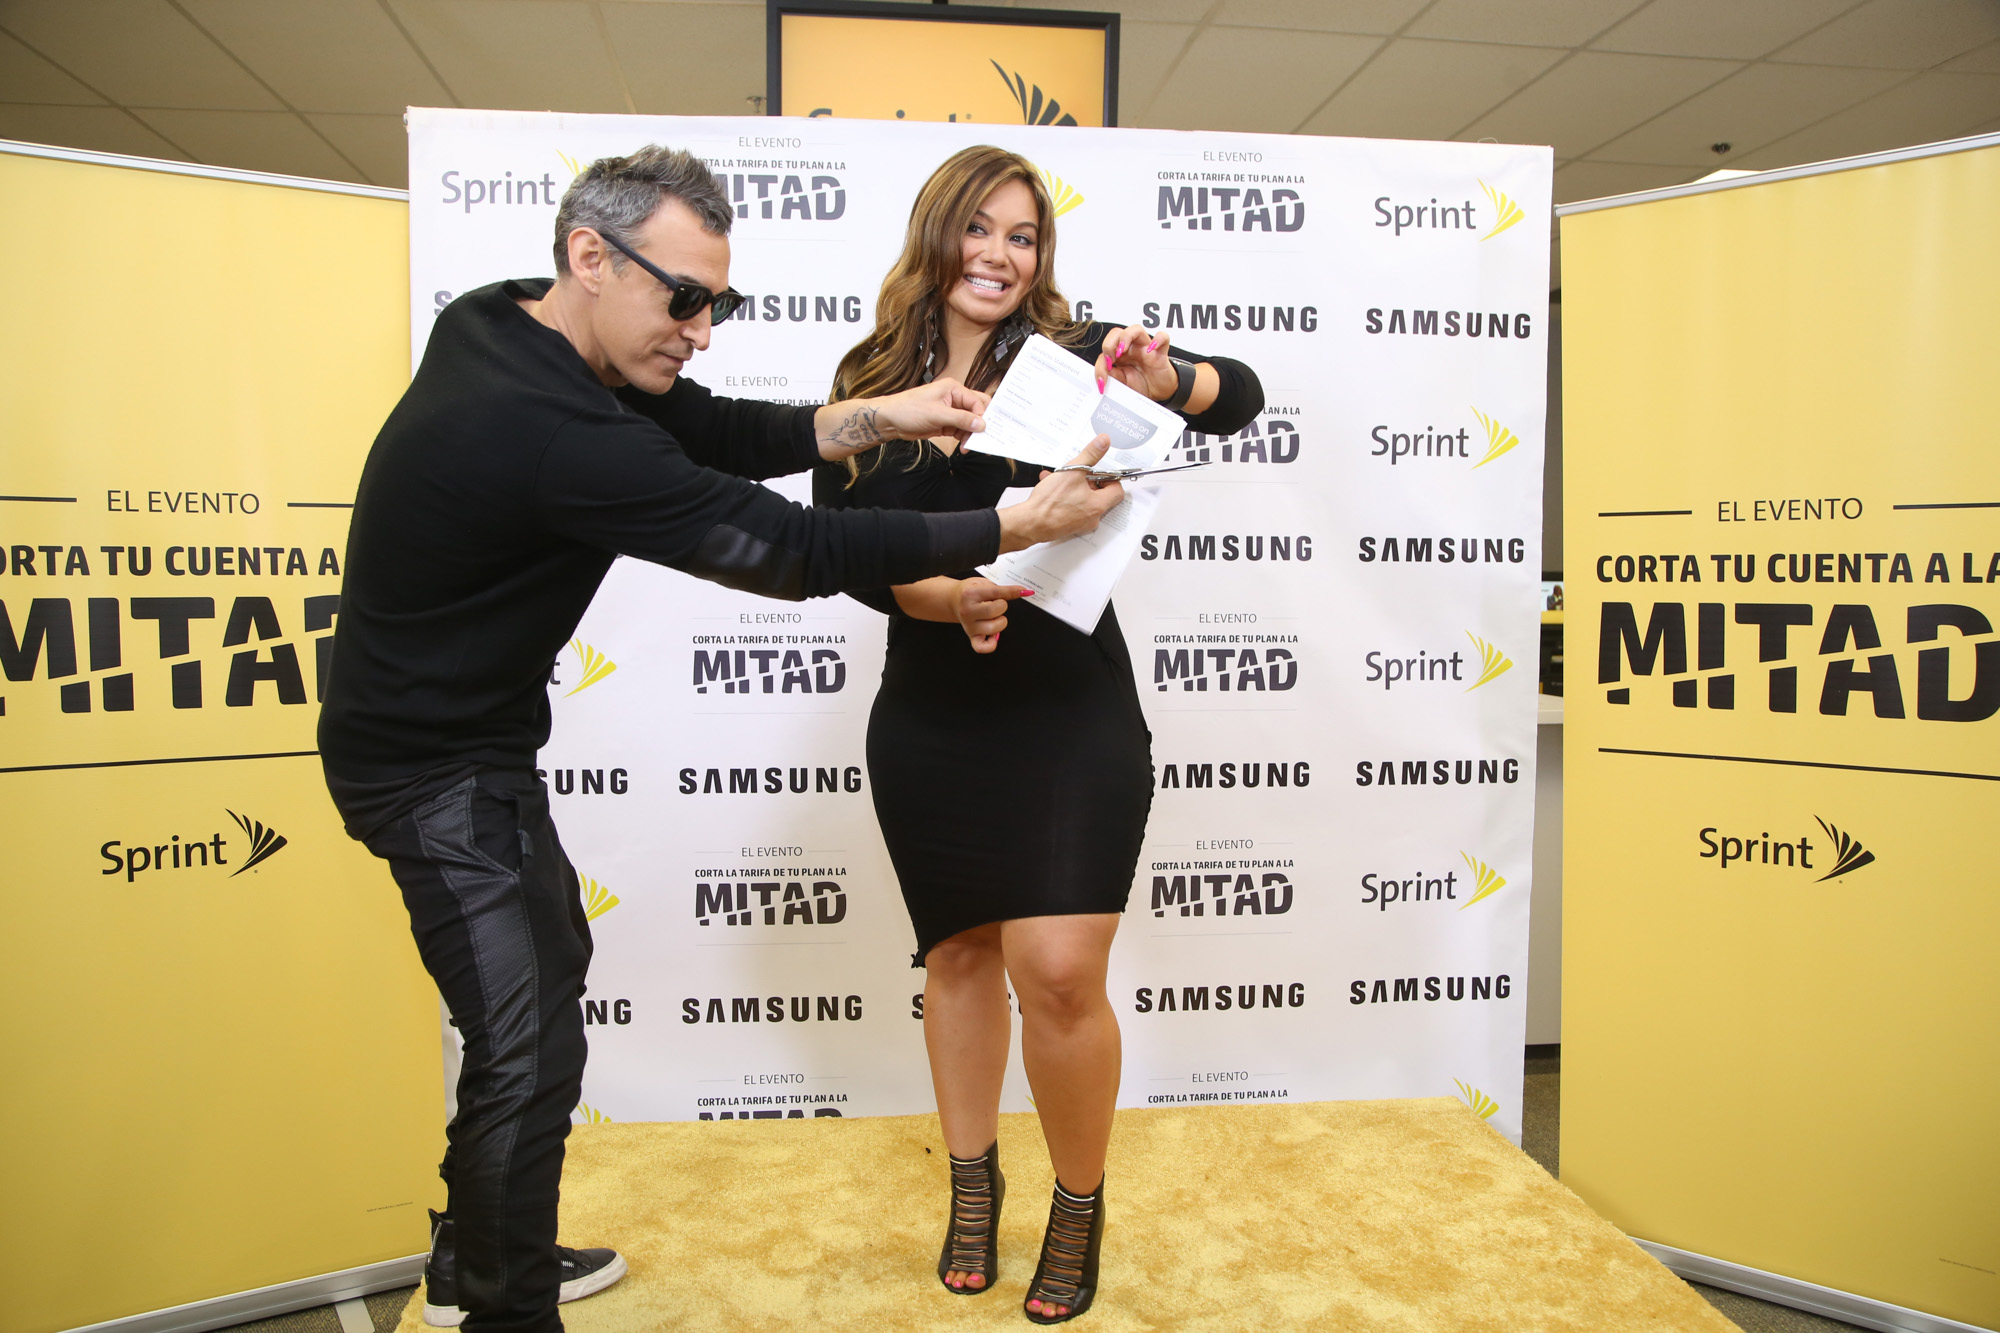 Designer to the stars, Adam Saaks and Chiquis Rivera energetically cut the competition's bill in half as part of the Sprint Cut Your Bill in Half Event.